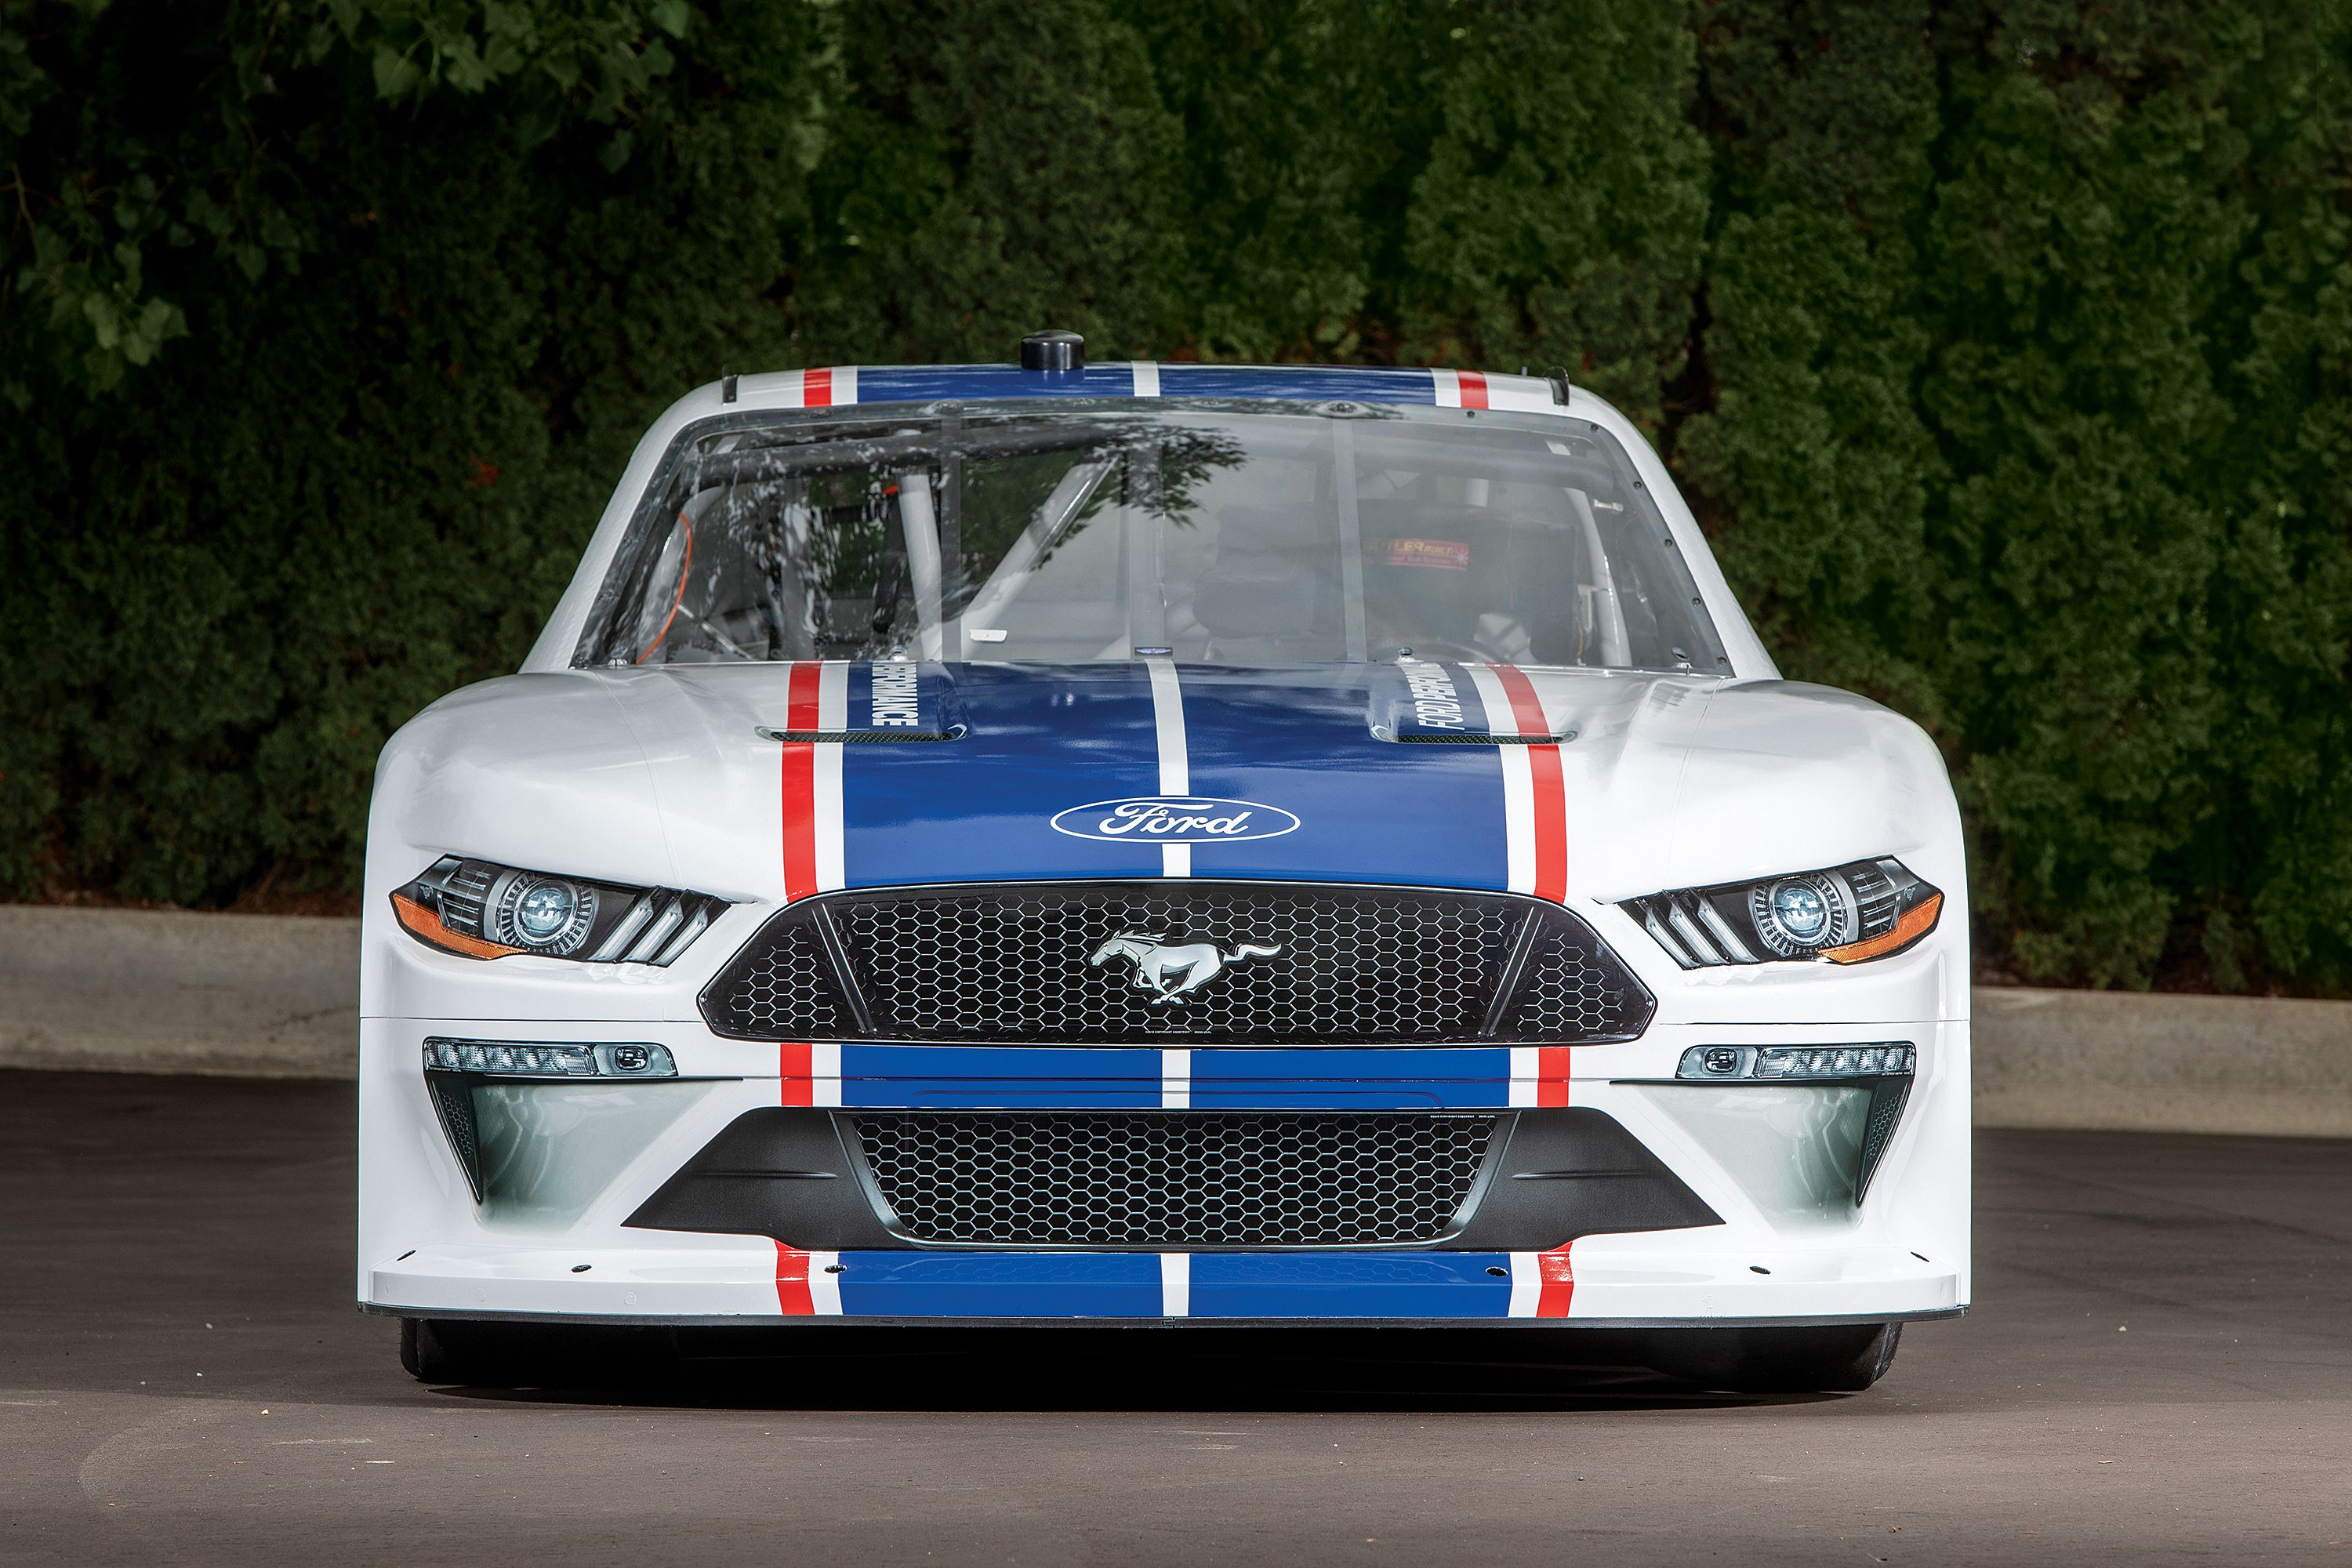 Vehicle Manufacturers In Nascar Ford Unveils 2020 Nascar Xfinity Series Mustang